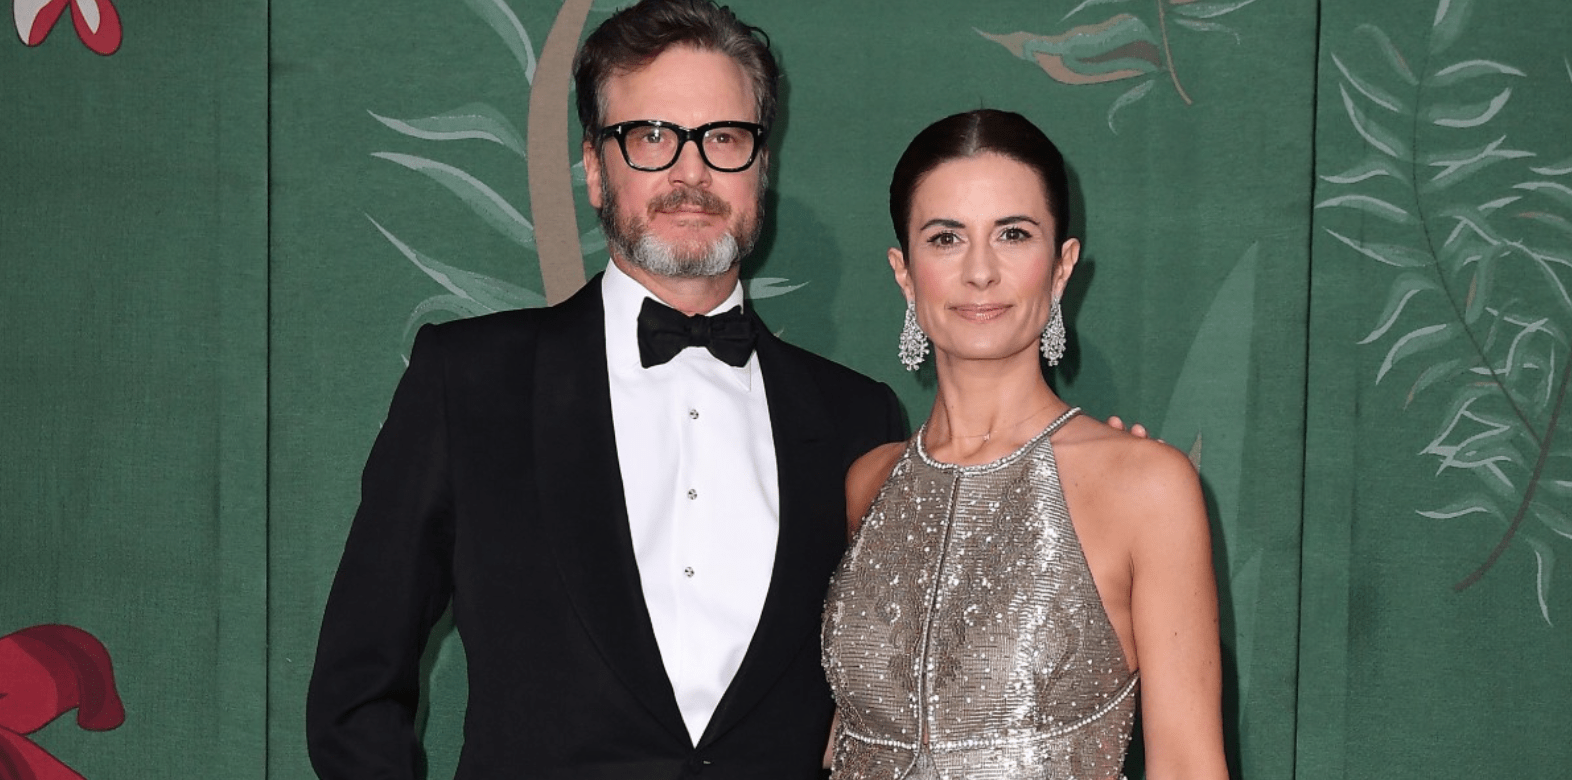 My sustainable fashion hero Livia Firth gets an honorary MBE